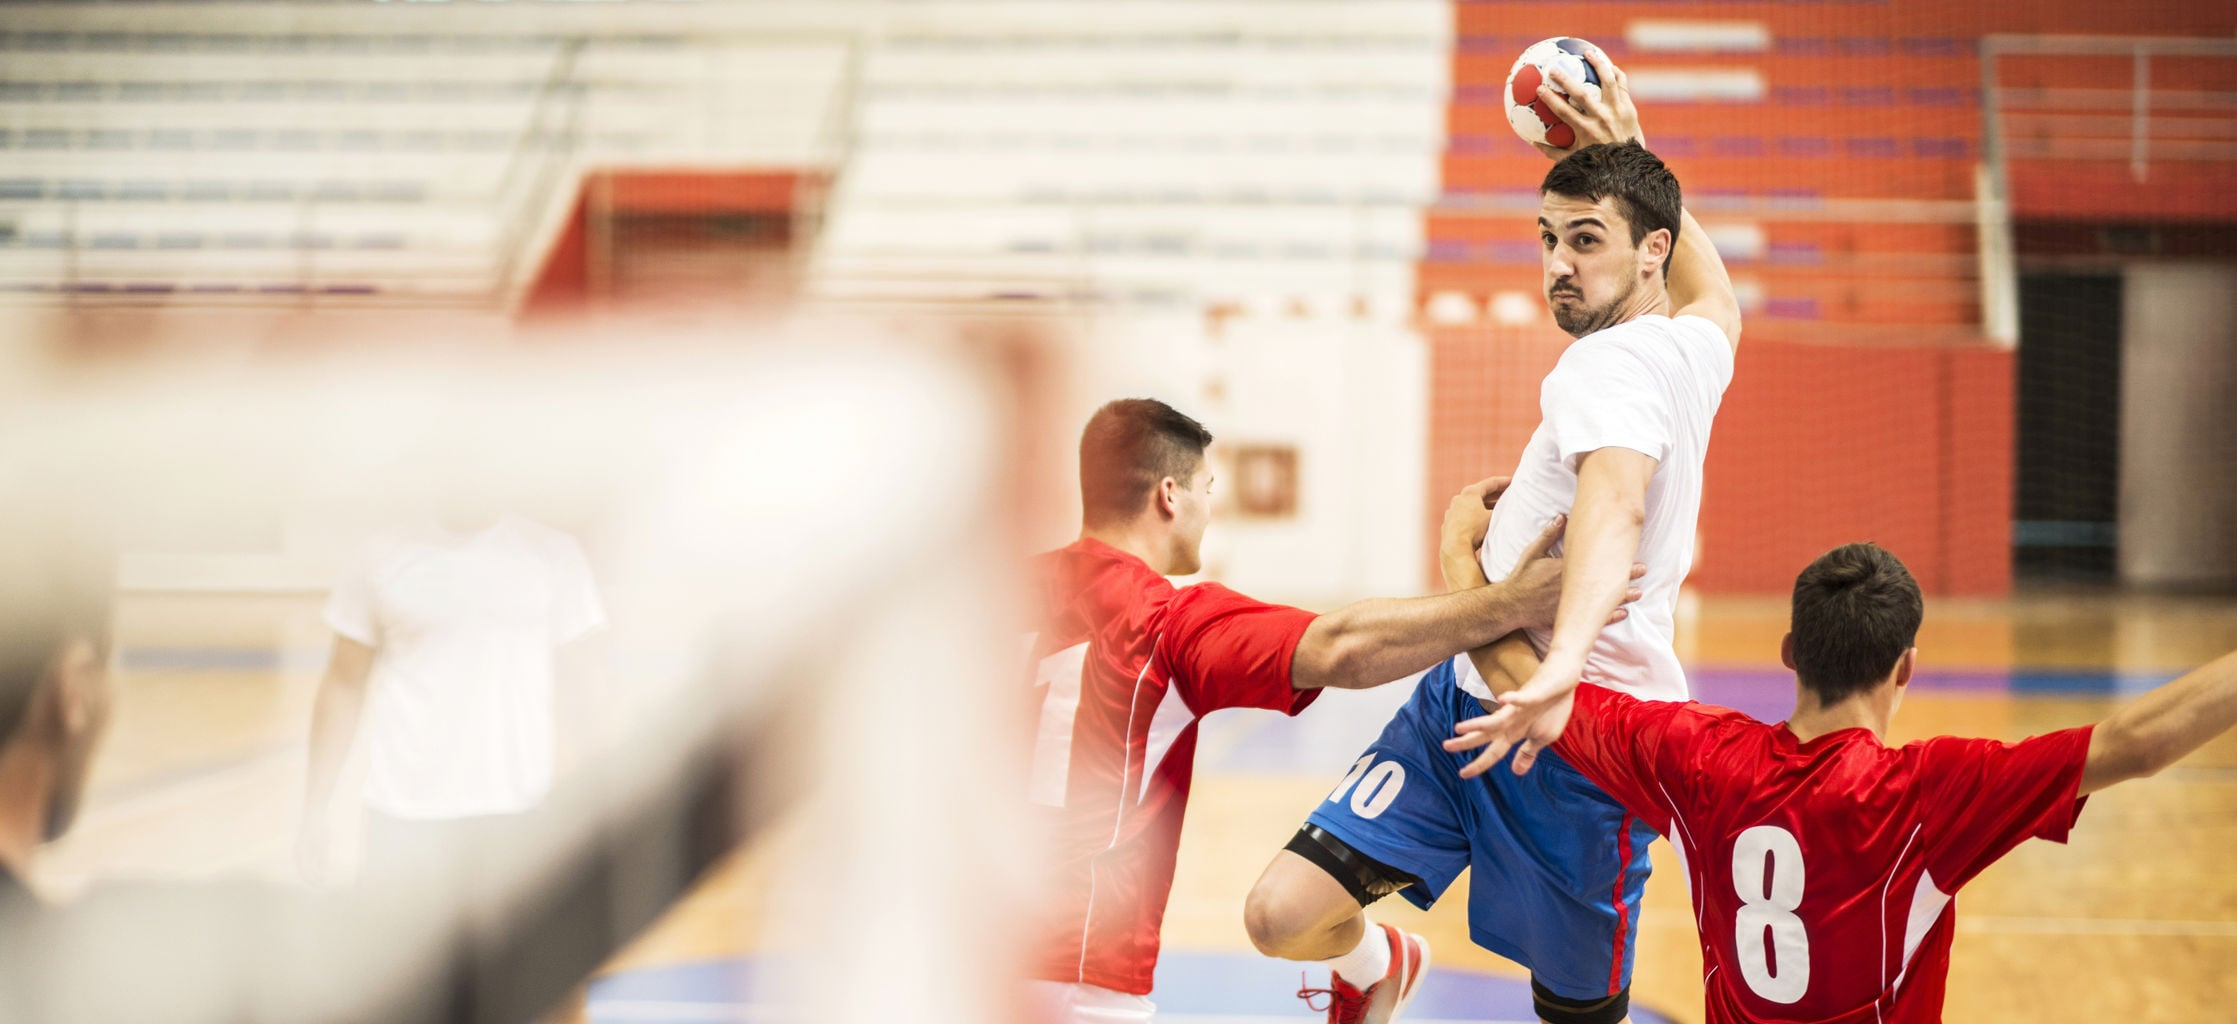 Handball Club Cambuston — Sporting Club de Sainte Marie